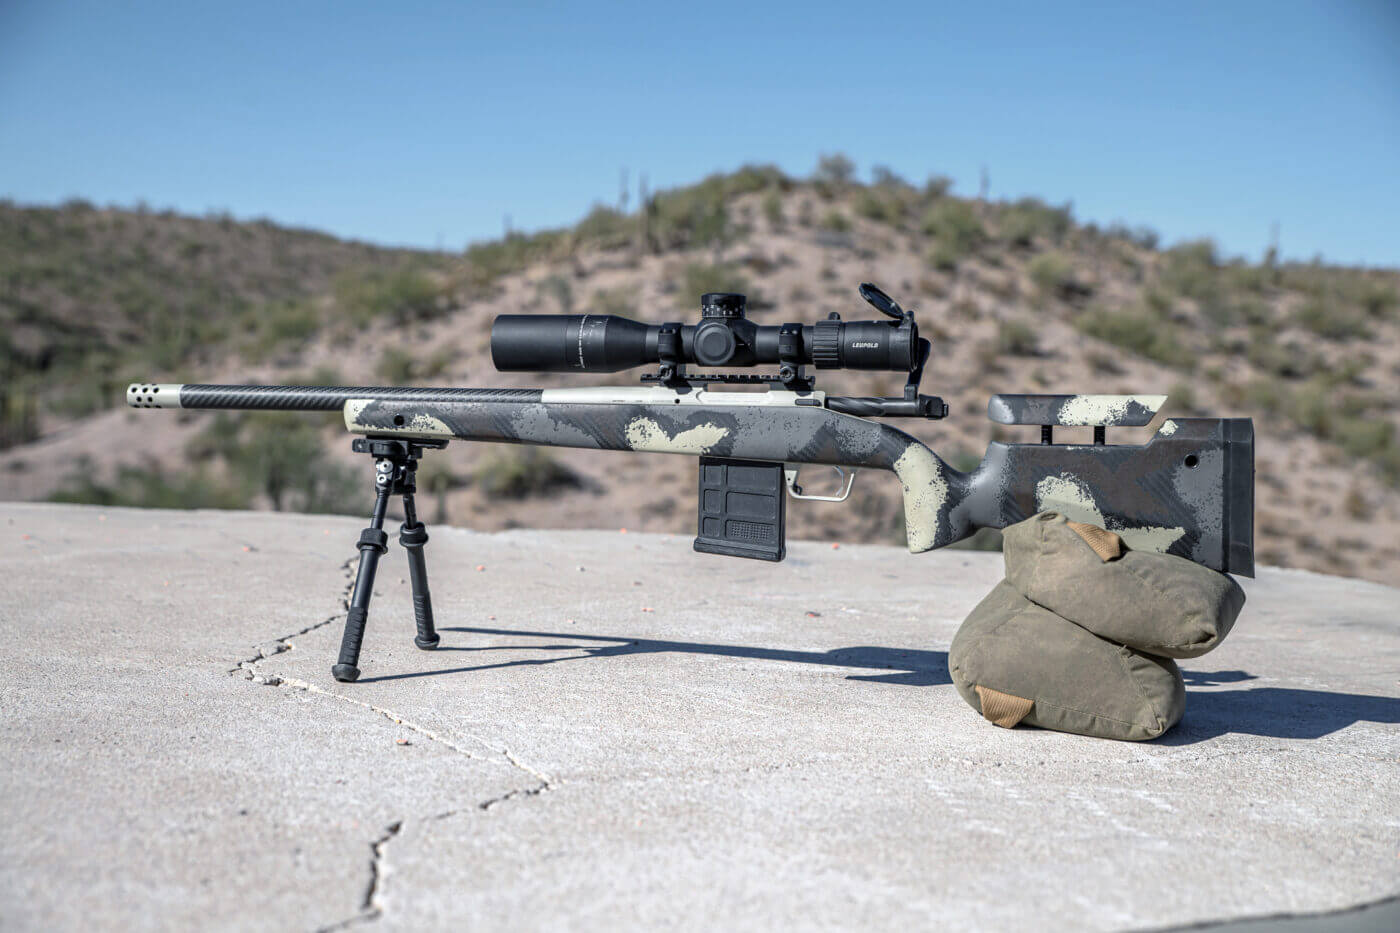 Model 2020 Waypoint fitted with a PRS Atlas Bipod